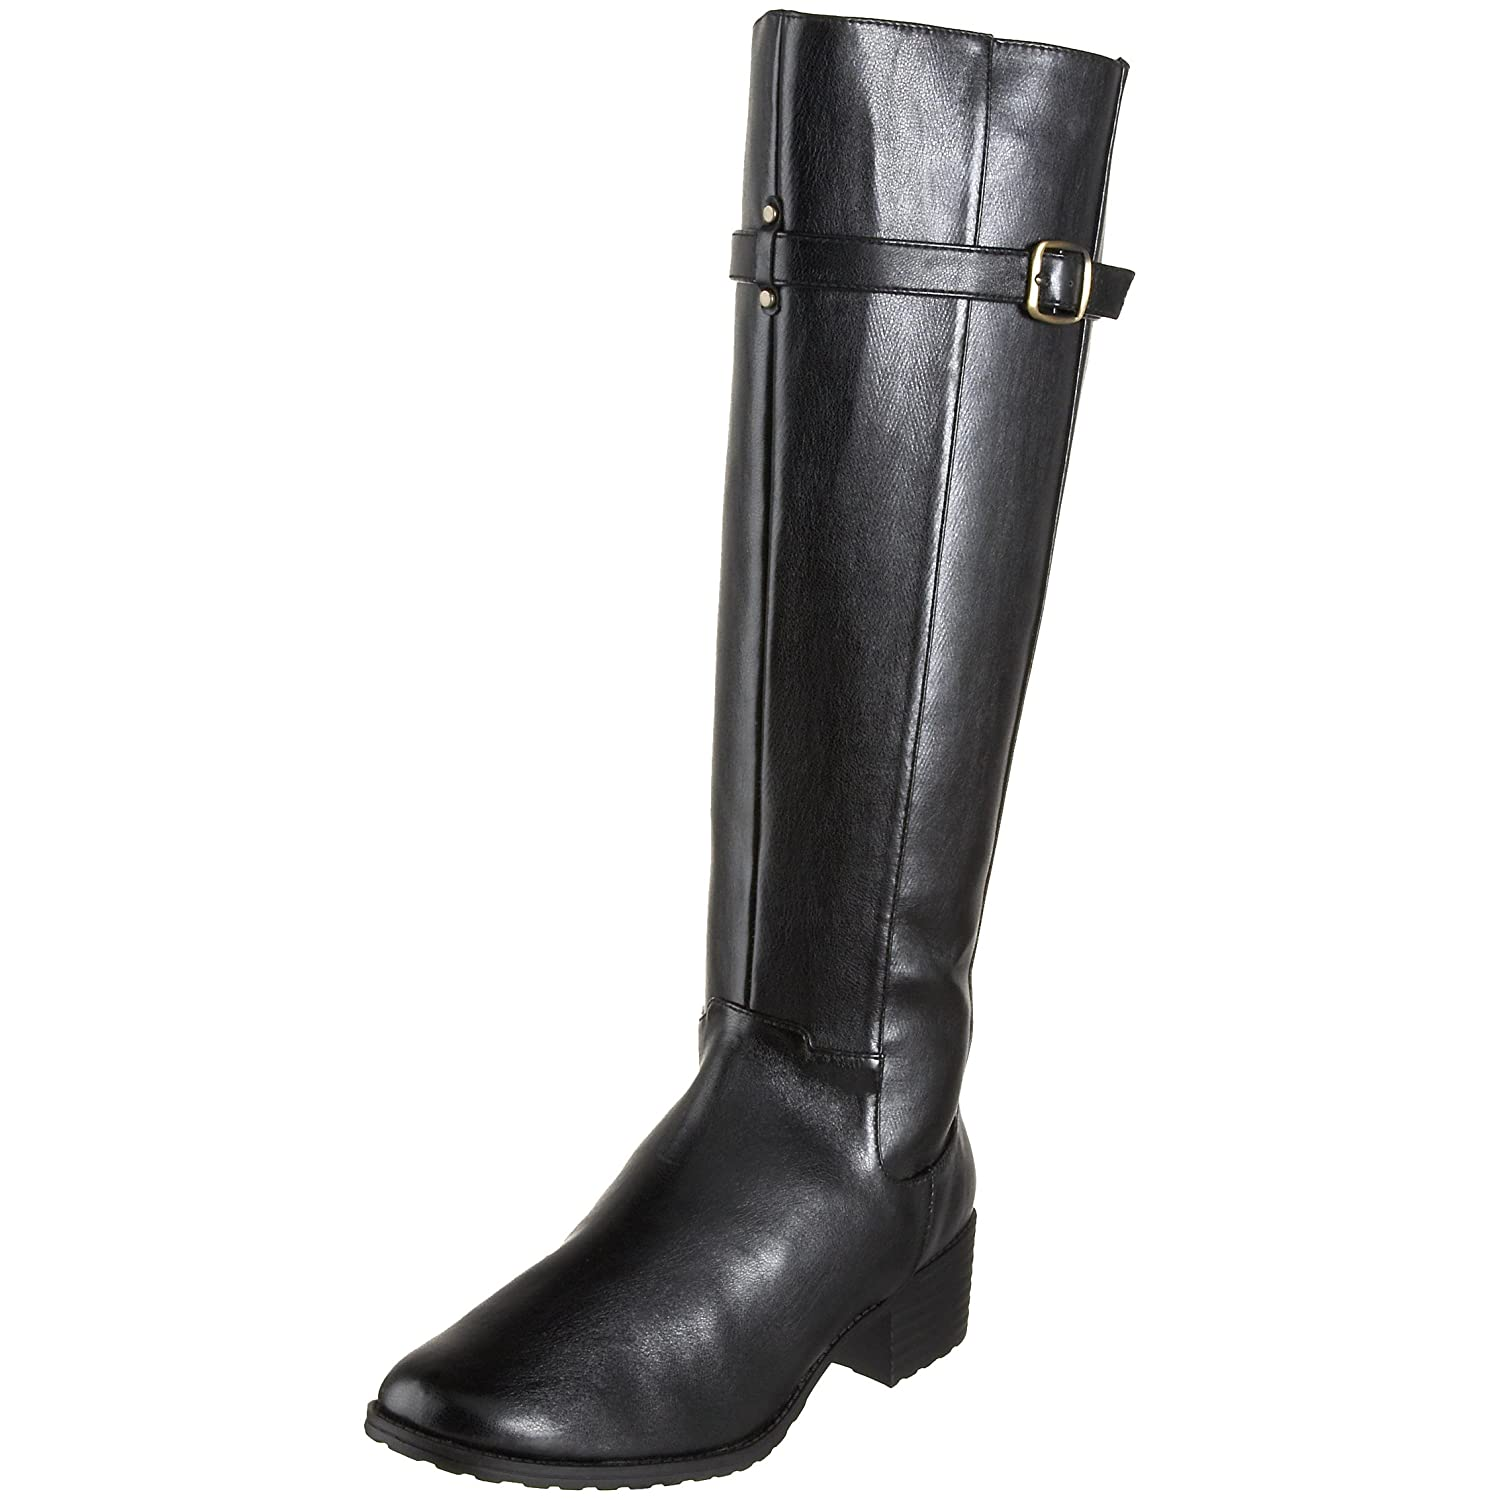 Annie Shoes  - Reins Knee-High Boot from endless.com